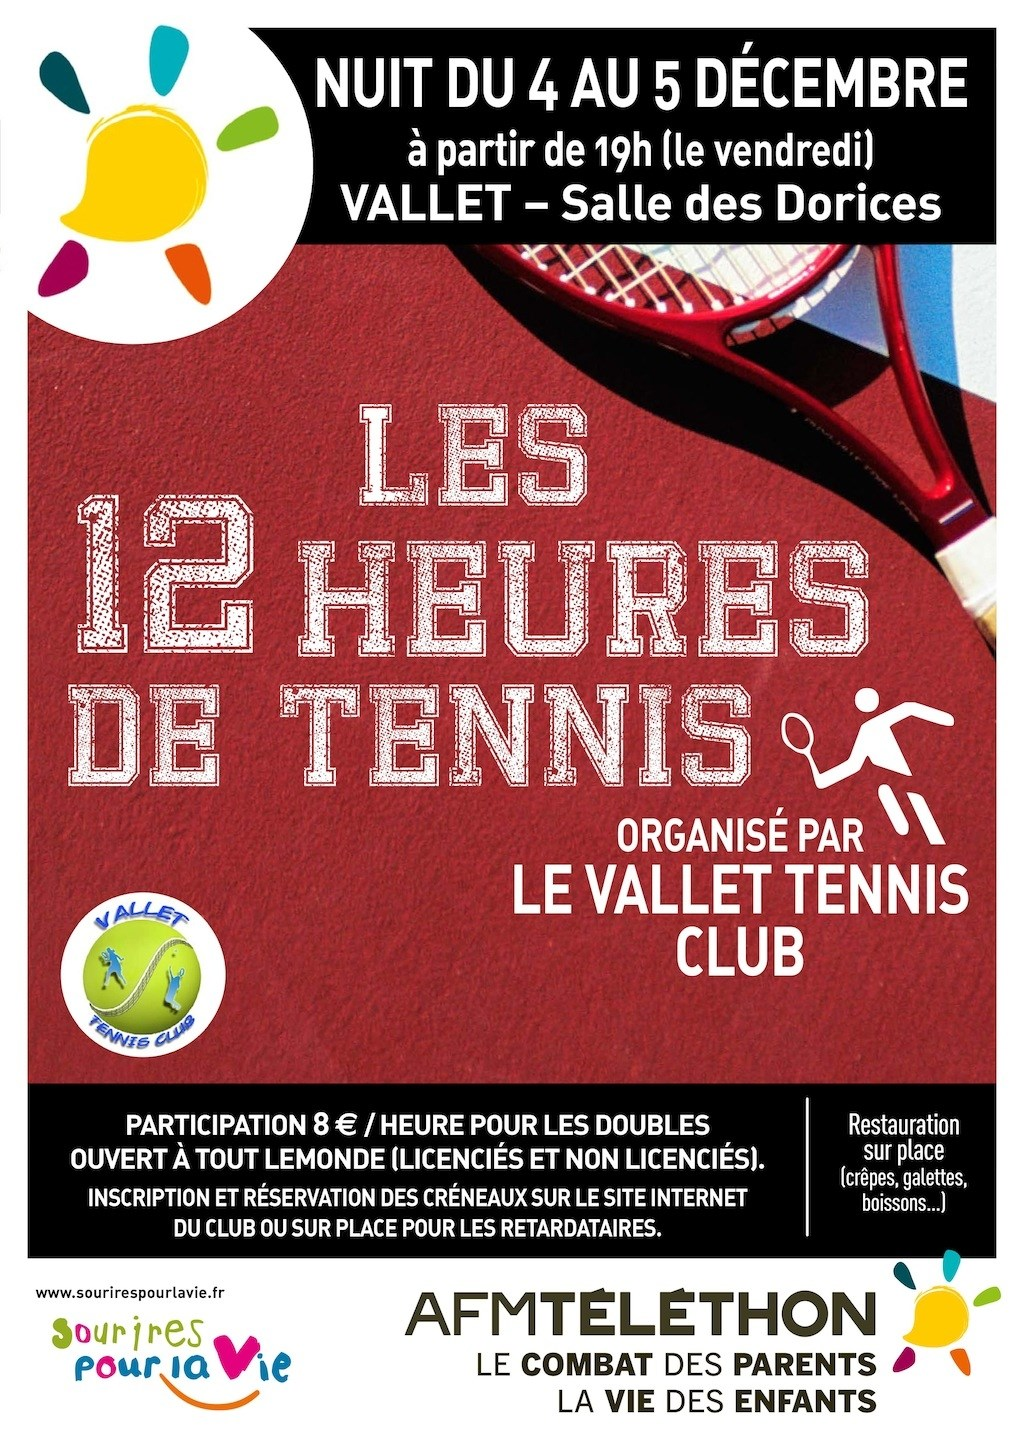 Tournoi de tennis Vallet